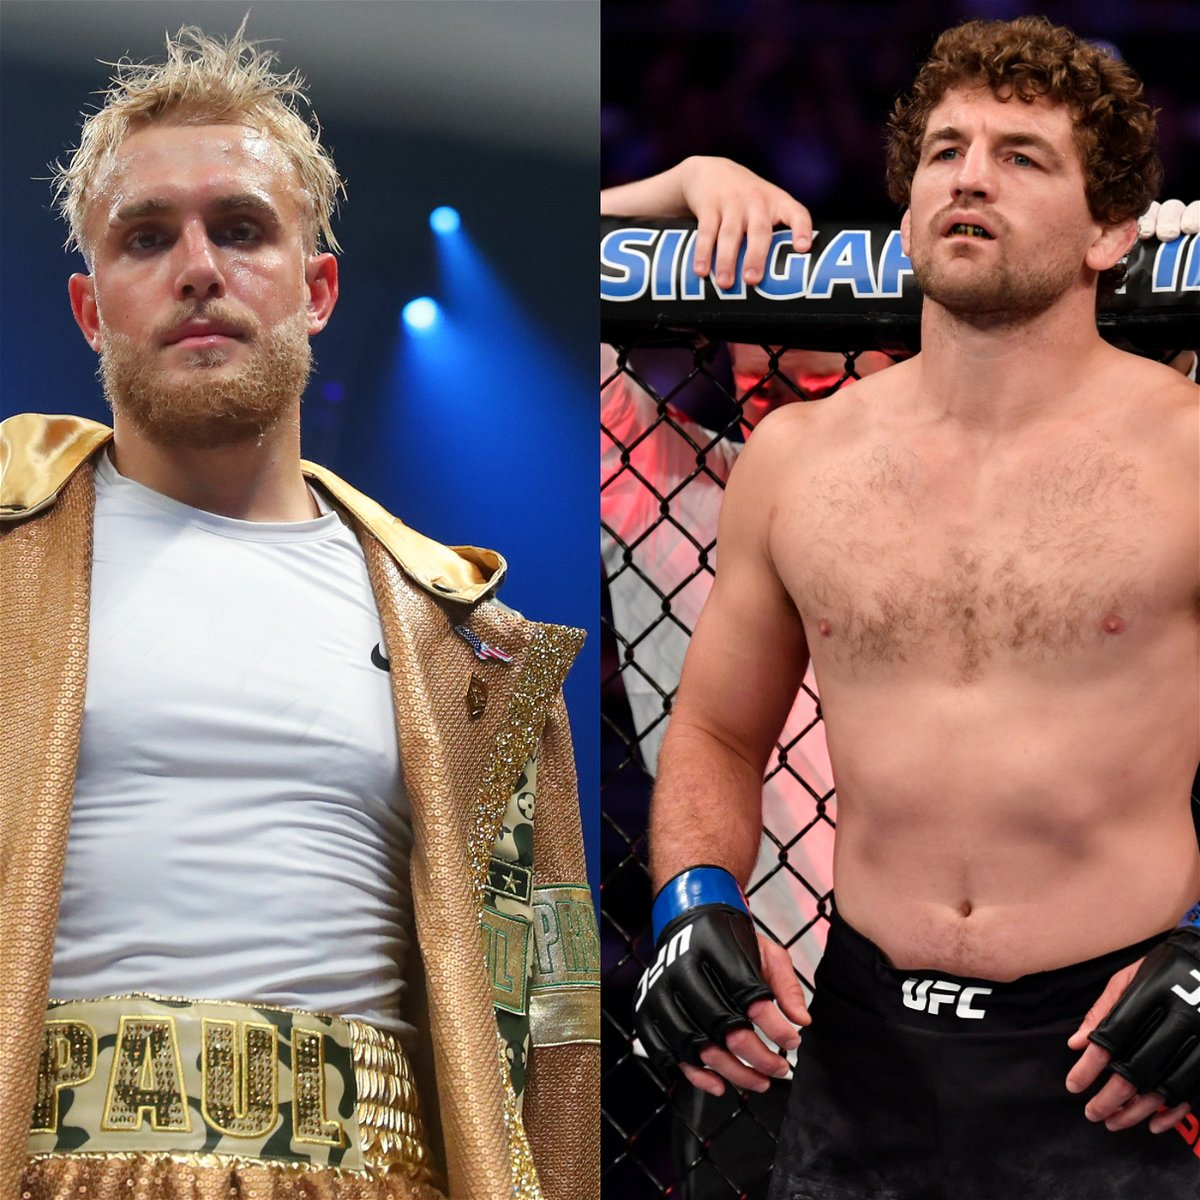 Ben Askren is targeting Jake Paul, even after commenting on the CTE state.